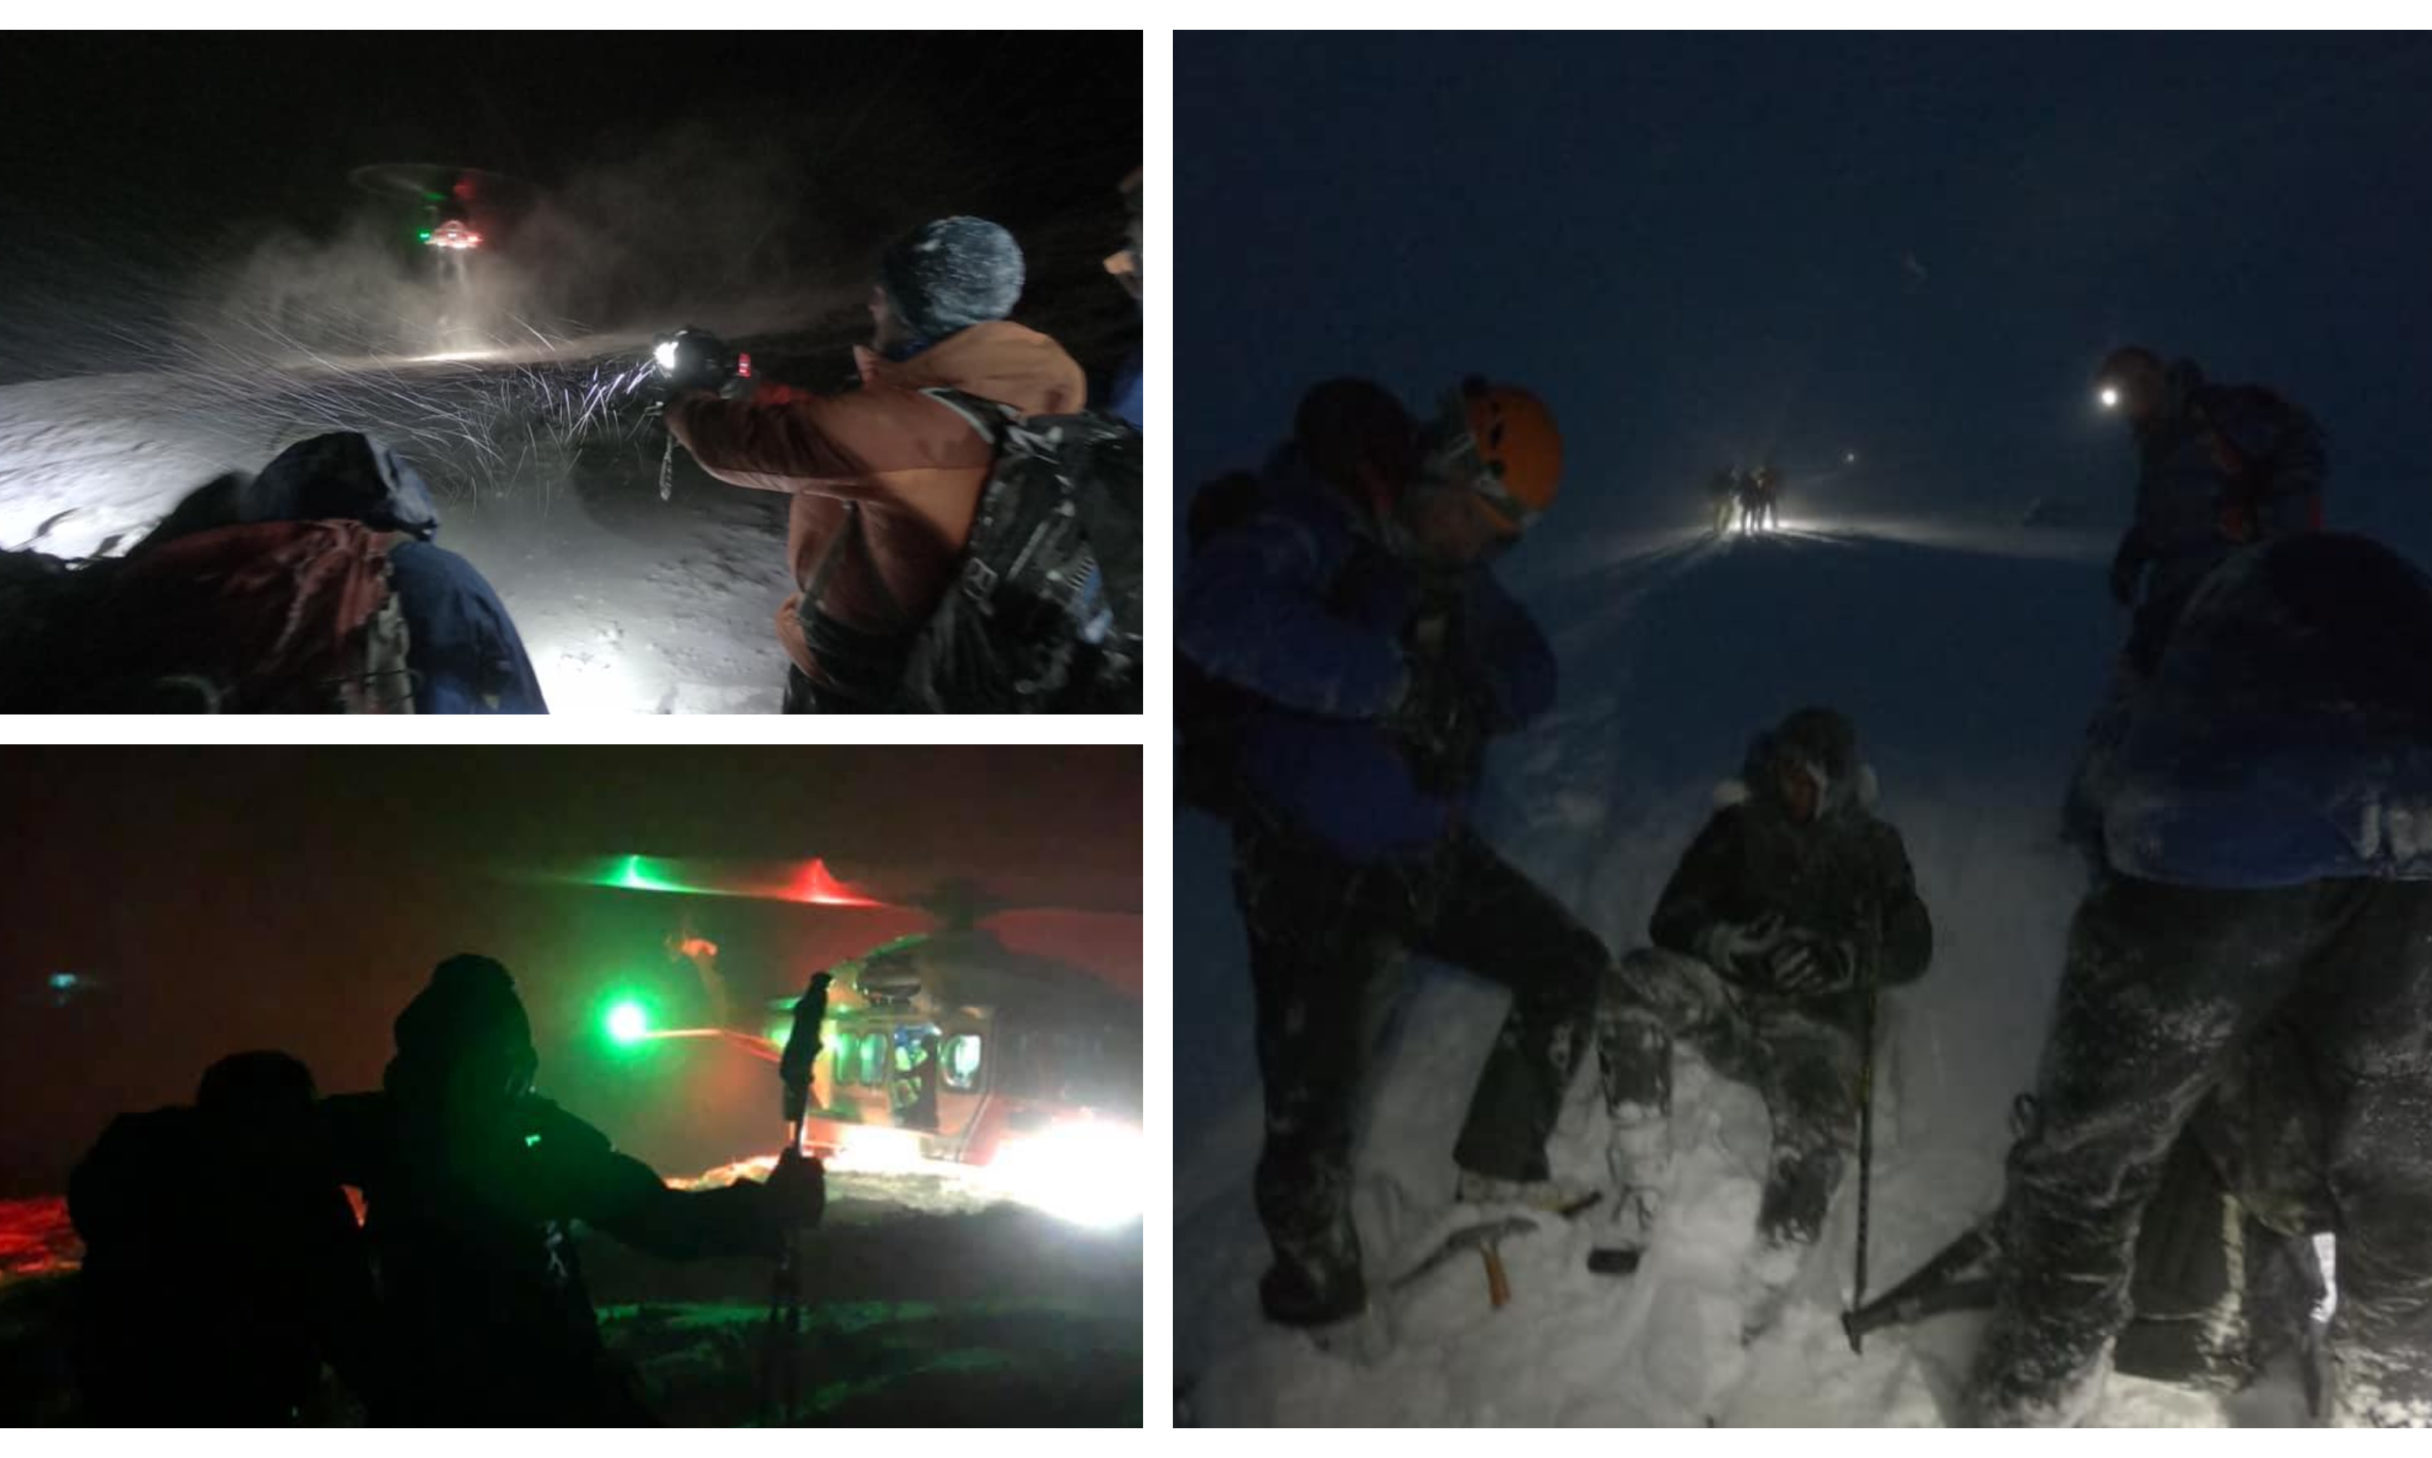 Photos from the rescue on Ben Nevis.